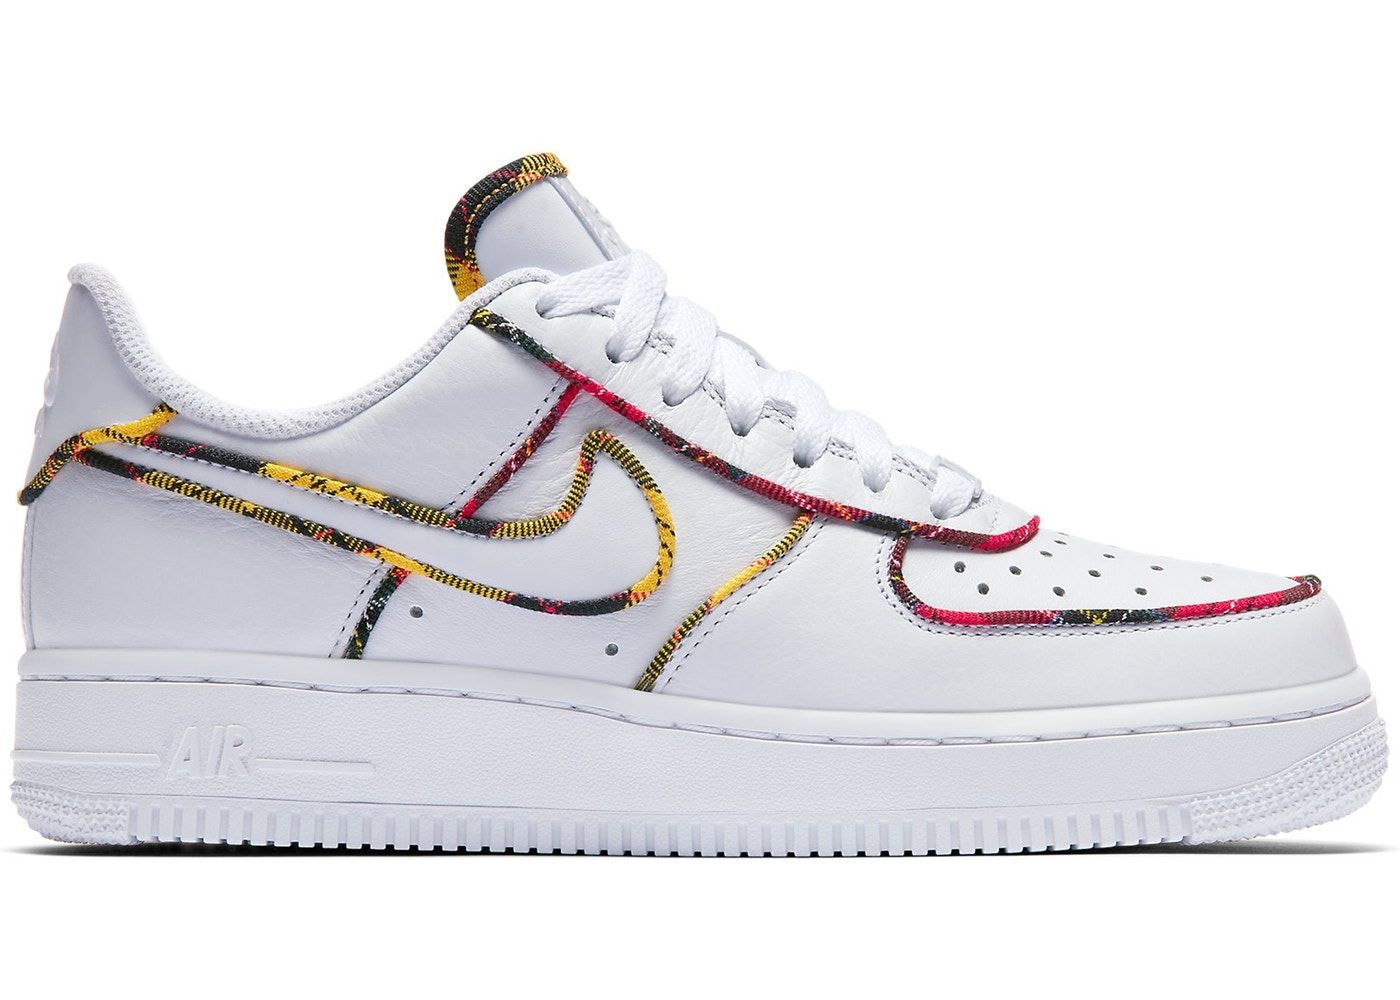 1dd1e059 Nike Force 1 Low Tartan White (W) in 2019 | Shoes | Air force 1 ...